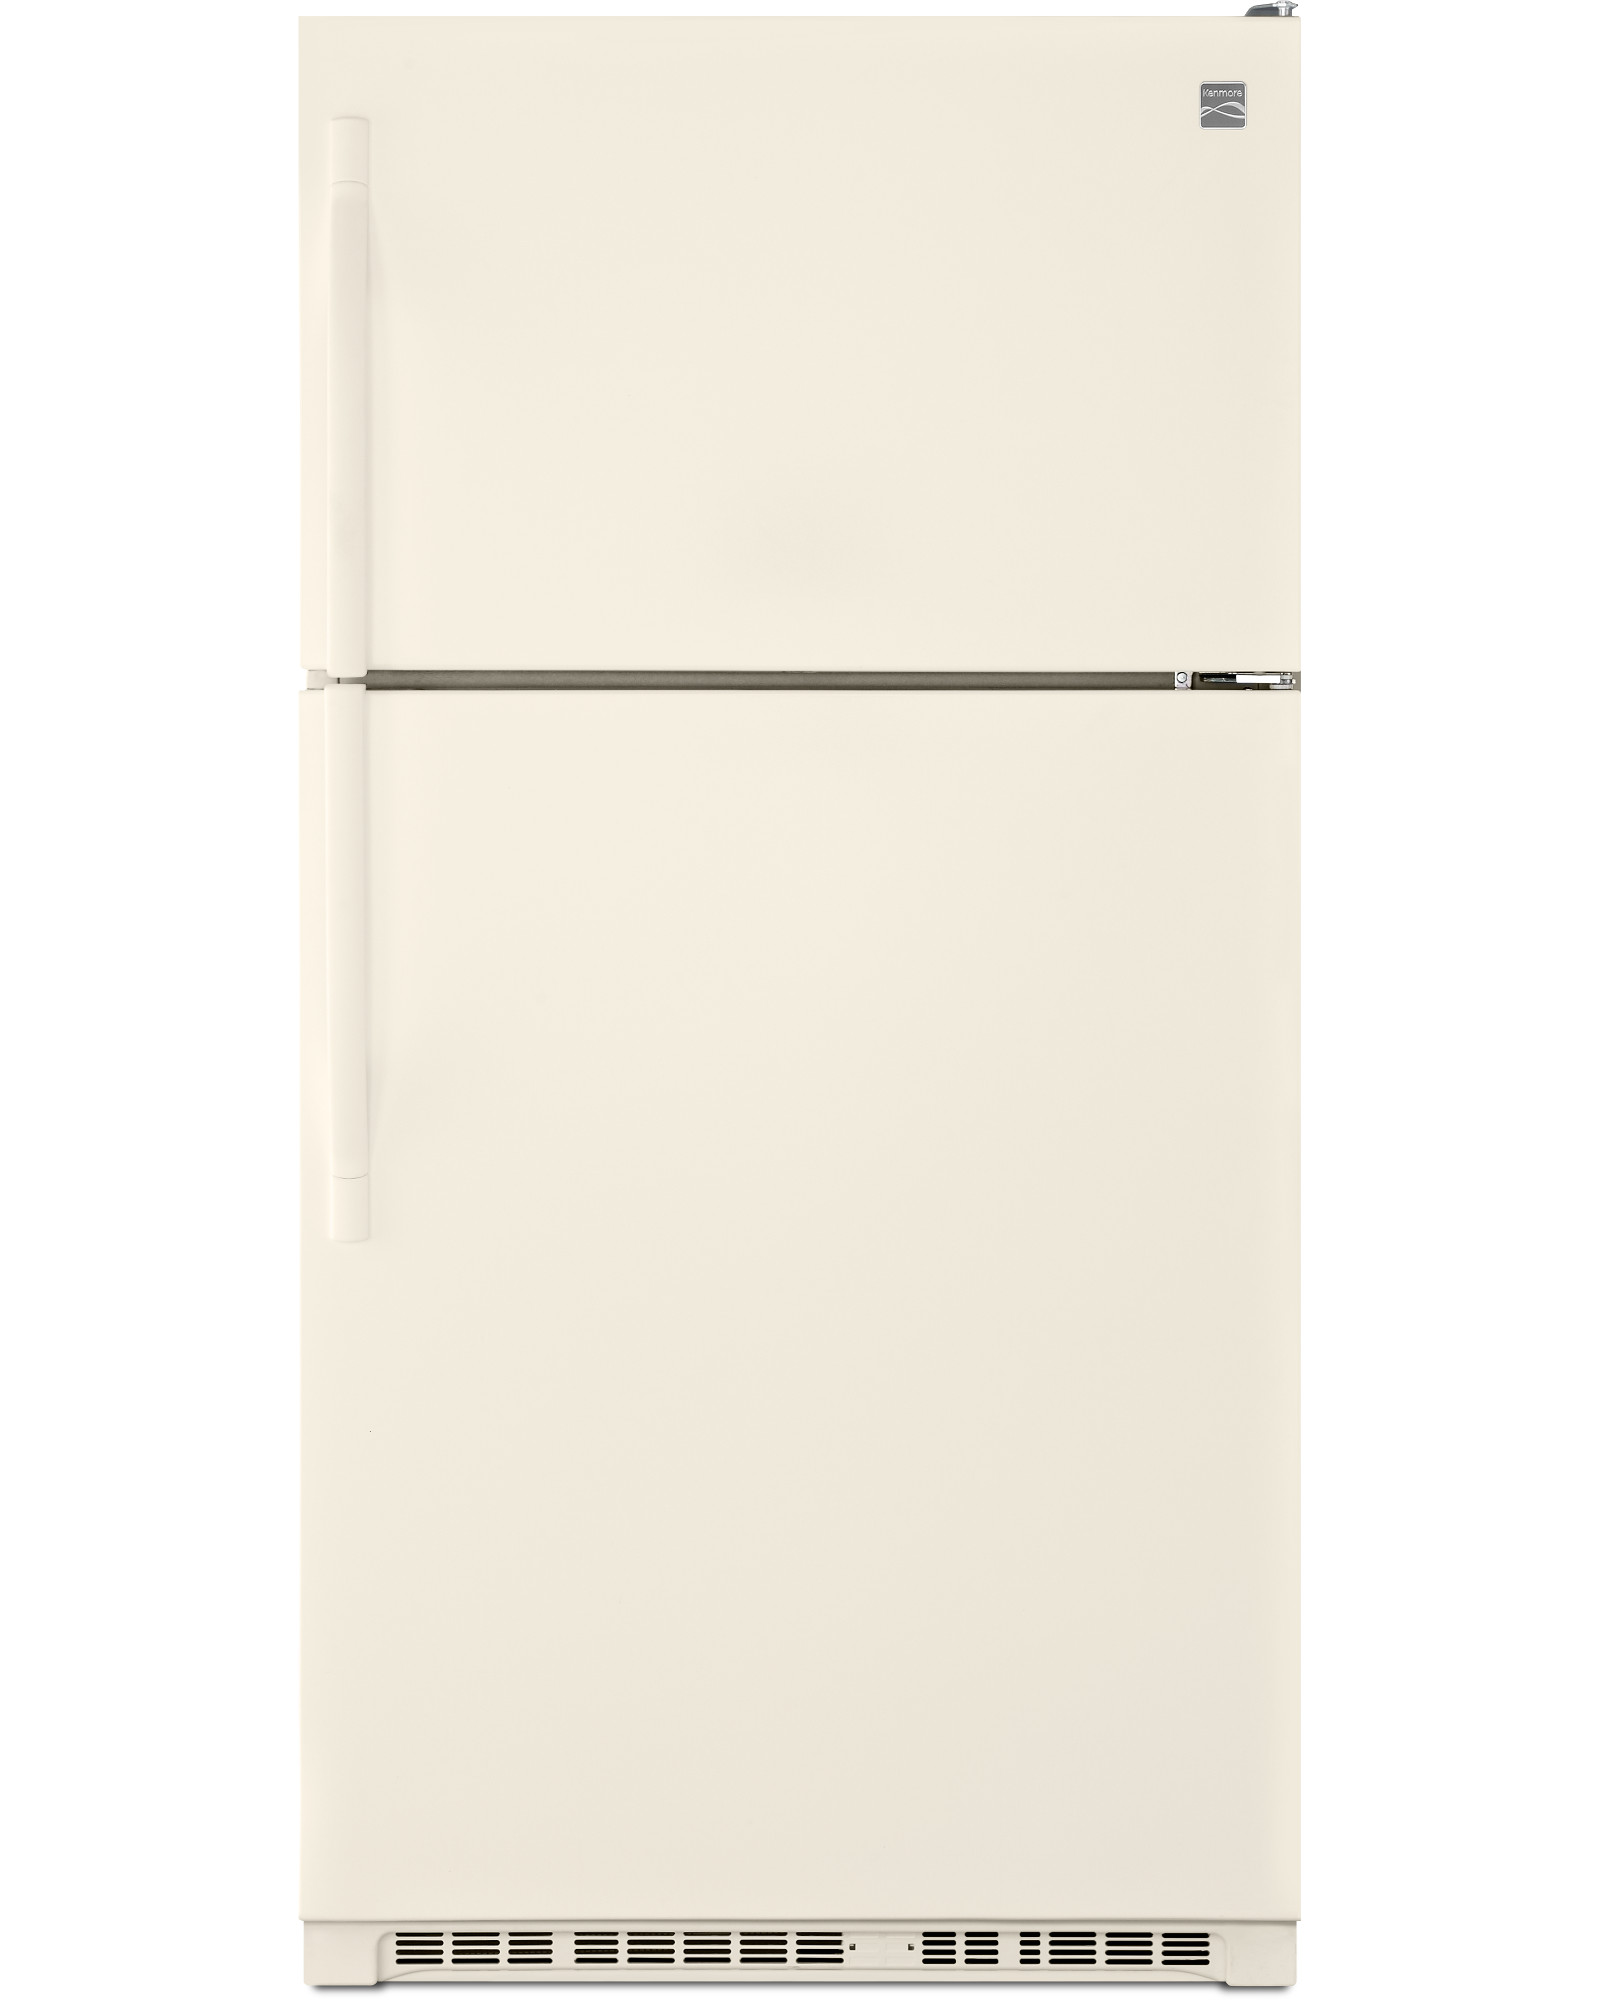 60214-20-5-cu-ft-Top-Freezer-Refrigerator-w-Humidity-Controlled-Crispers-Biscuit